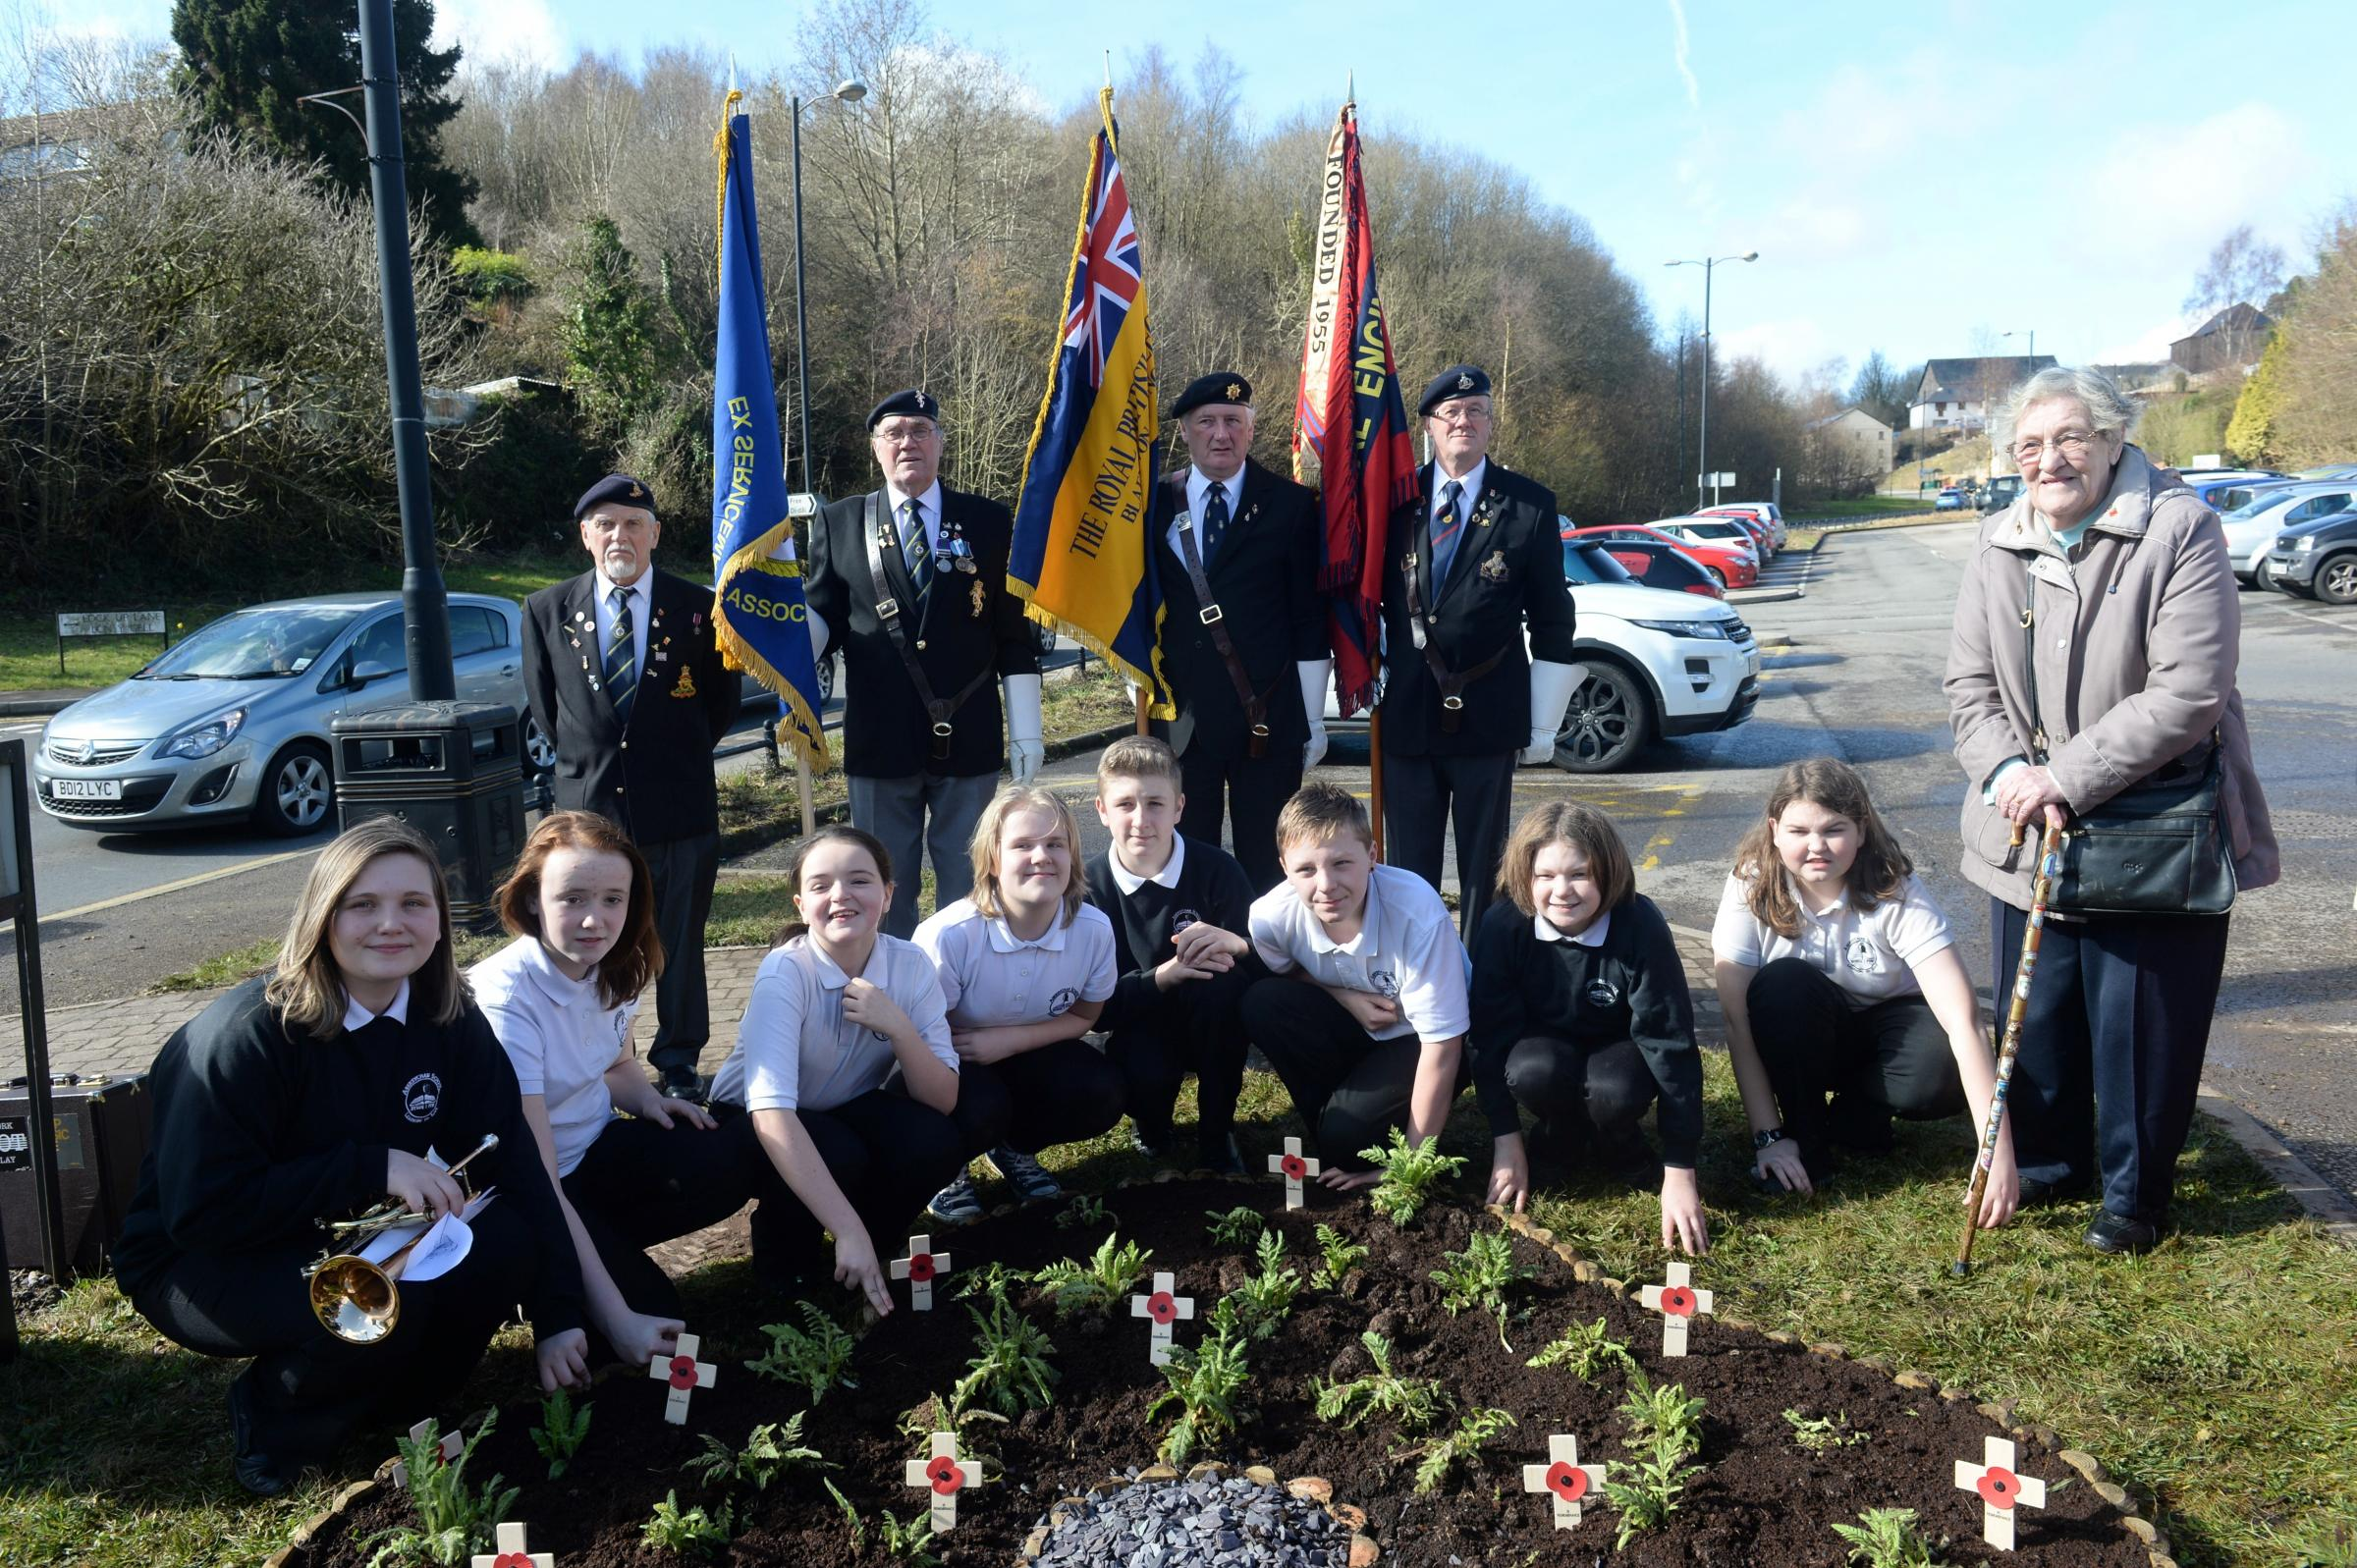 Official opening of memorial garden in Abersychan. Pupils from Abersychan school with representatives of the Blaenavon Royal British Legion and Cwmbran and District ex servic